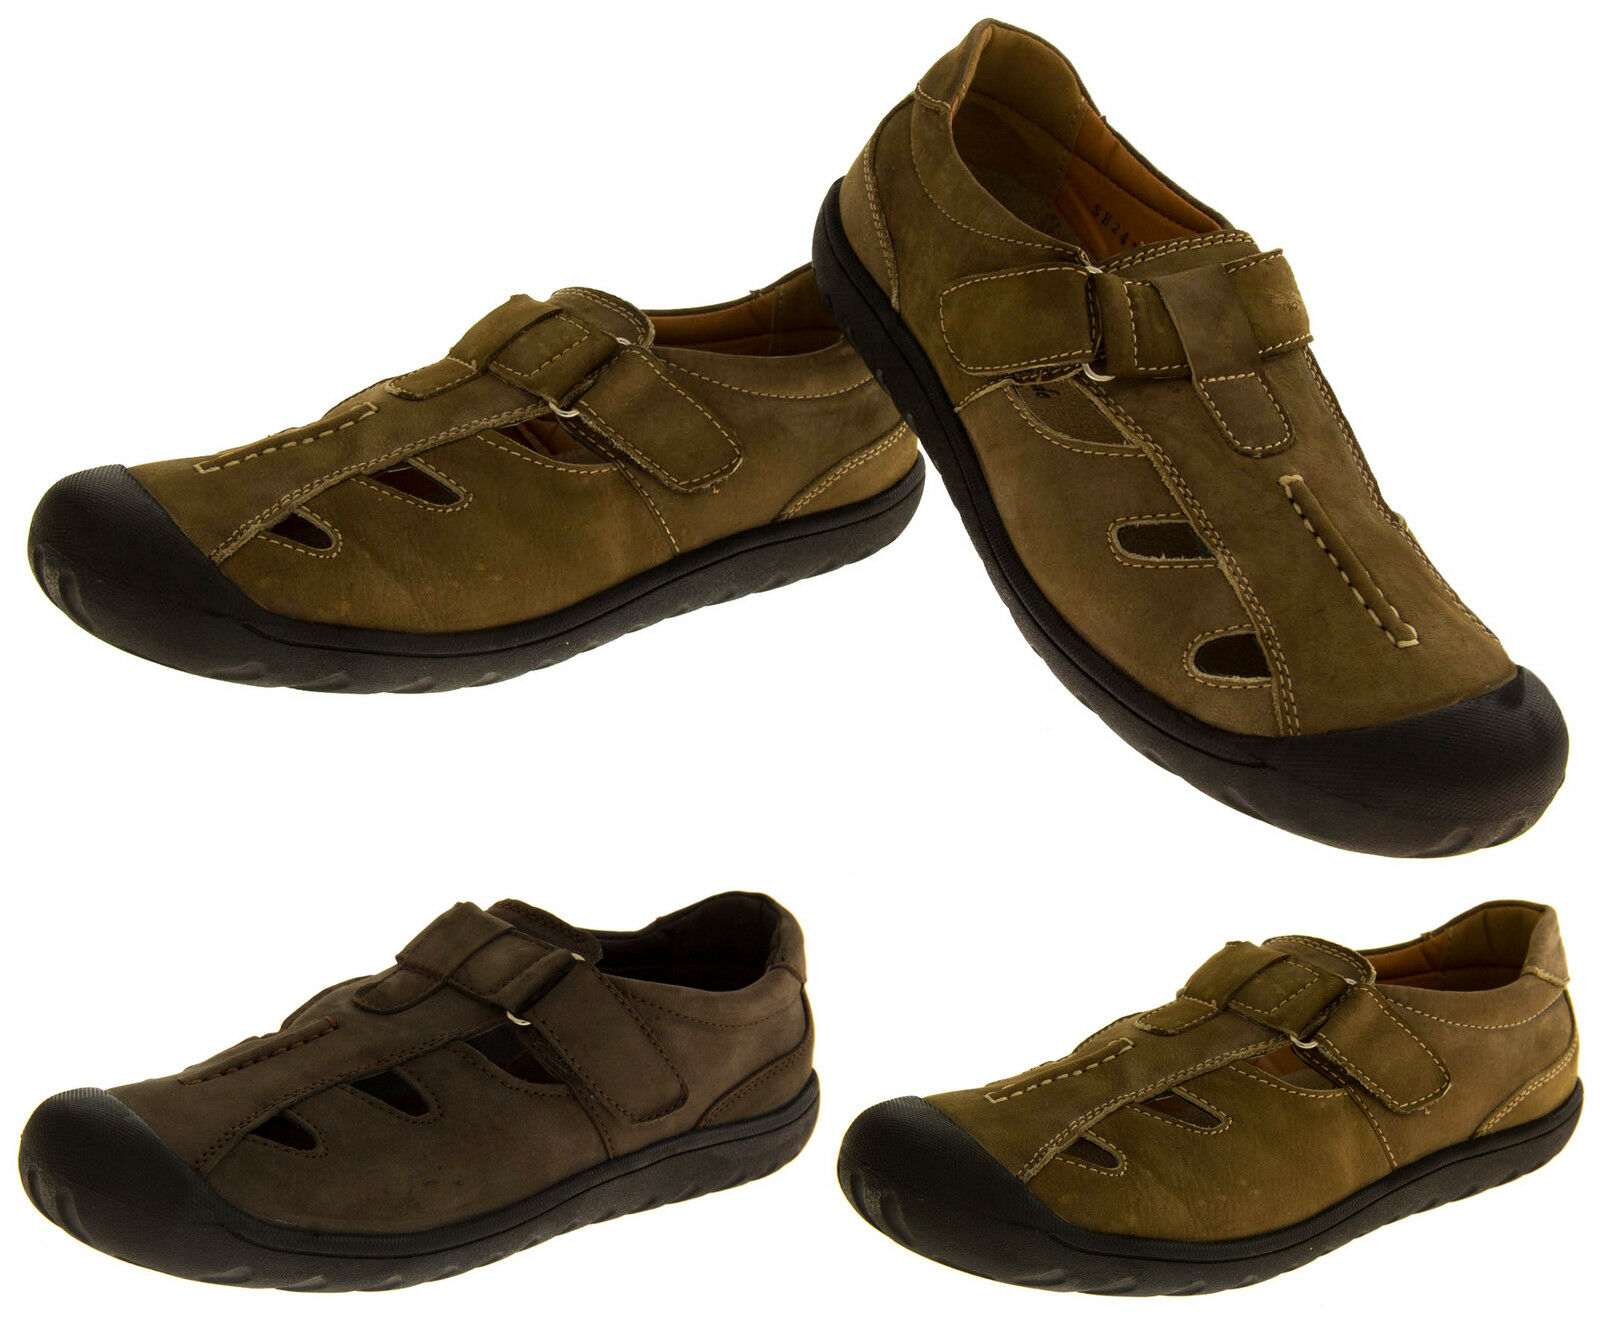 Mens LEATHER SHORESIDE Closed Casual Toe Walking Outdoor Sports Casual Closed Summer Sandals a0eb5a